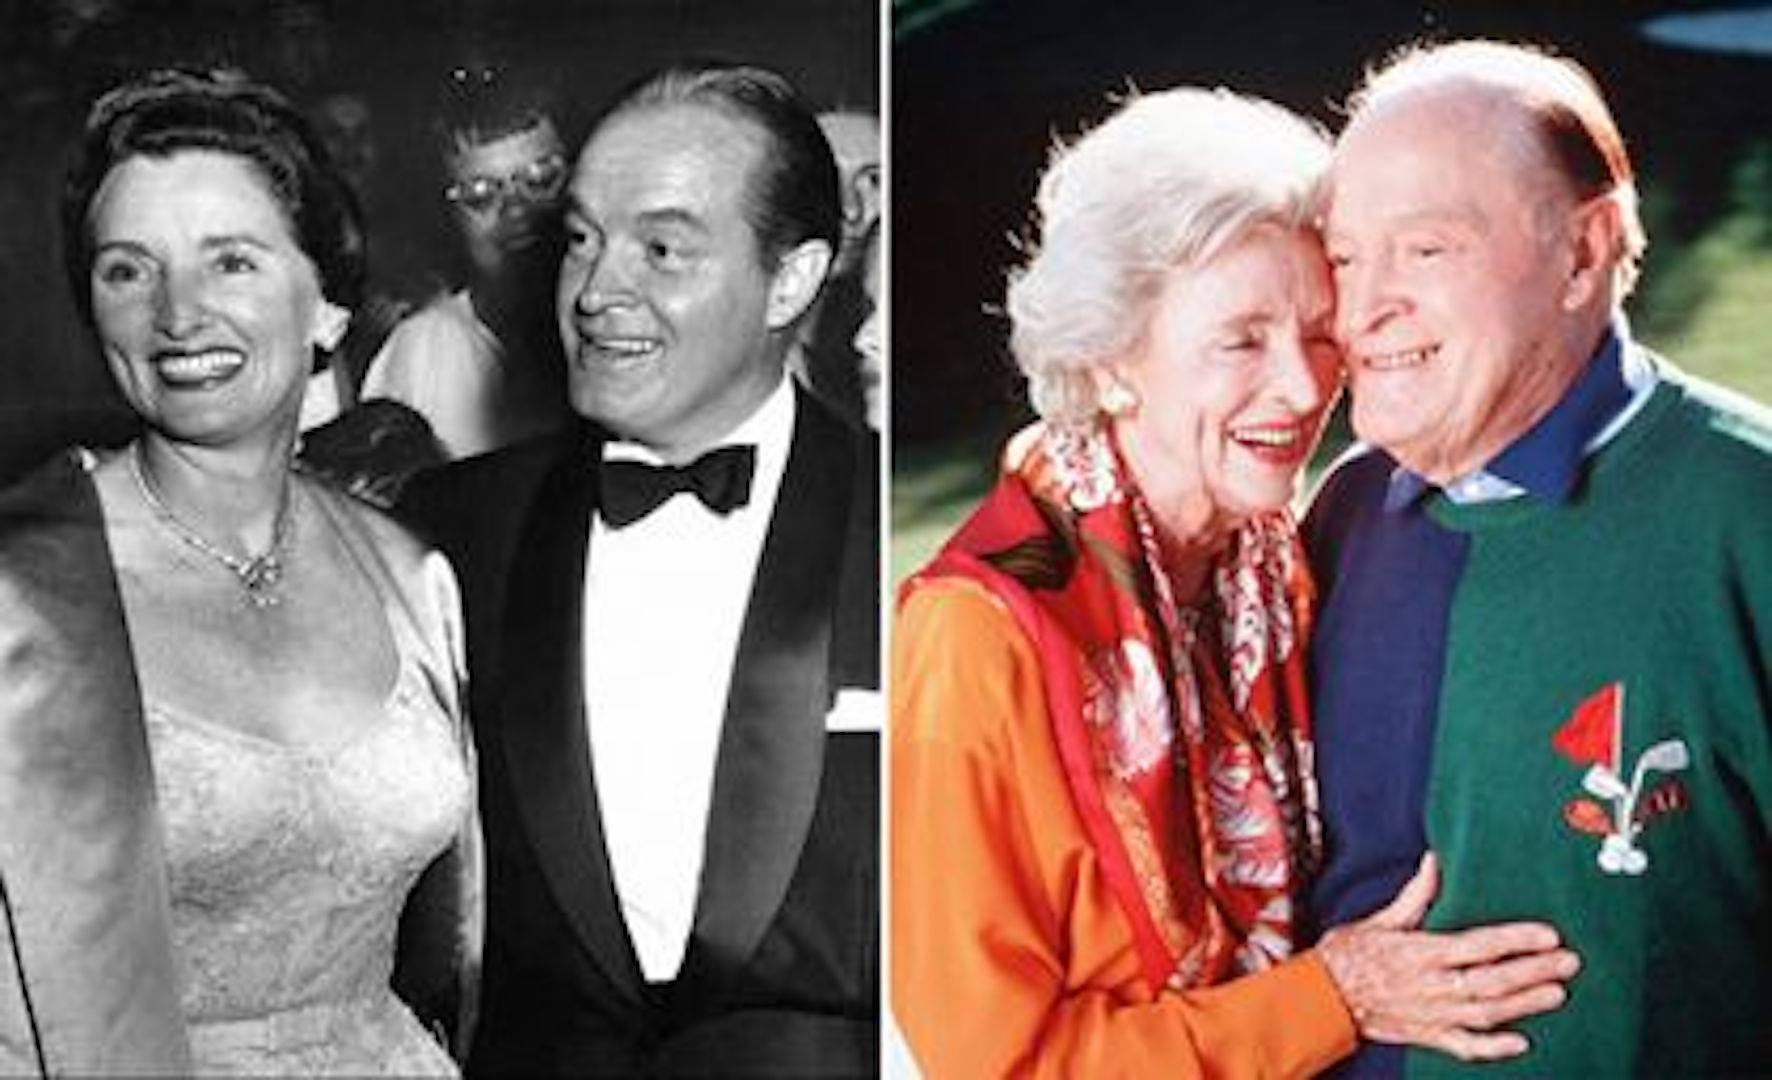 82 years ago today, Bob Hope and Dolores DeFina Hope were married. From February 19, 1934 until his death on July 27.